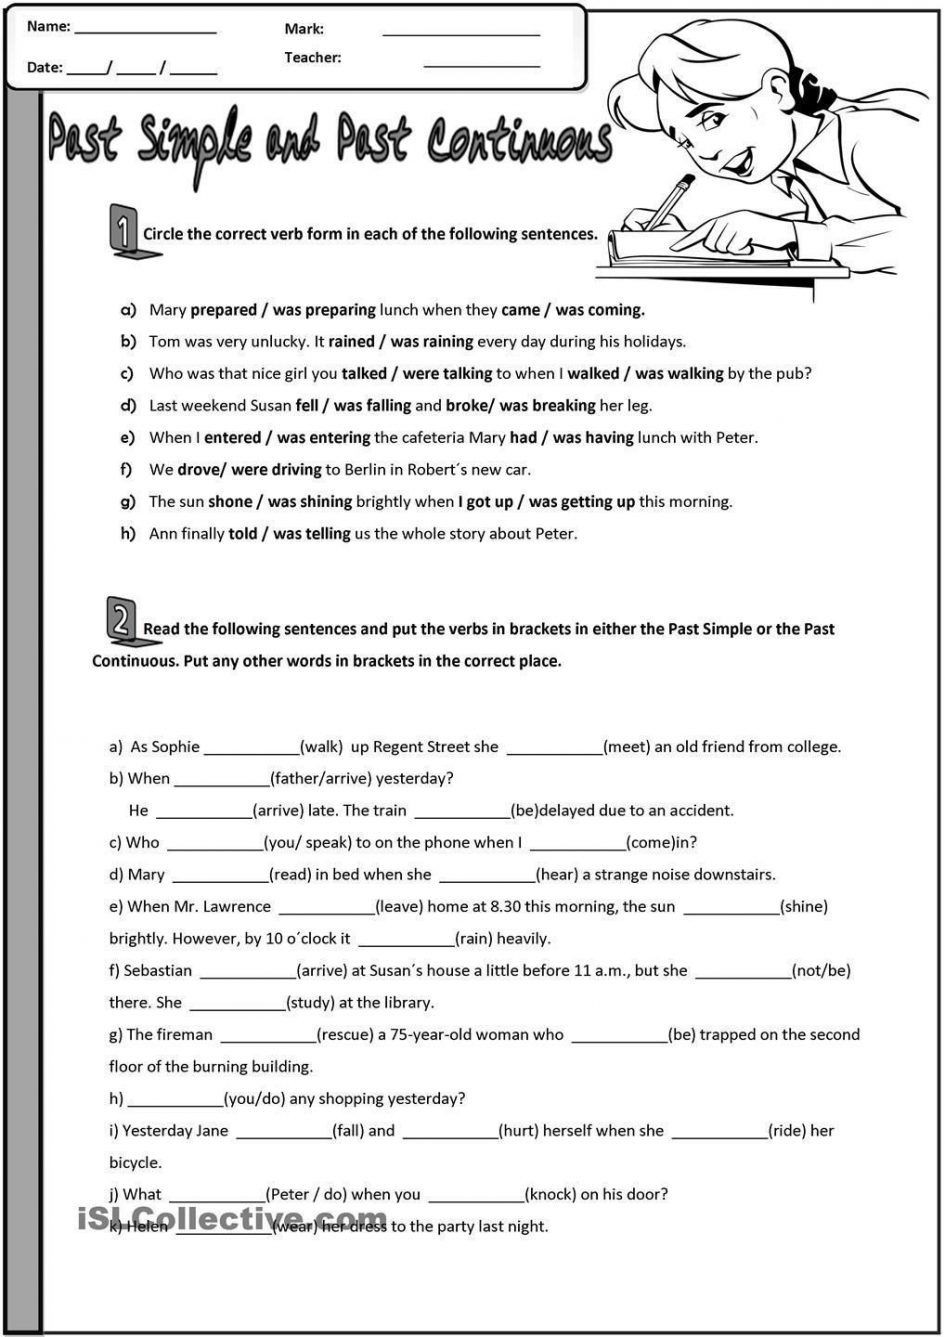 Grammar Worksheets High School Excel Fun Grammar Worksheets for High School Kids